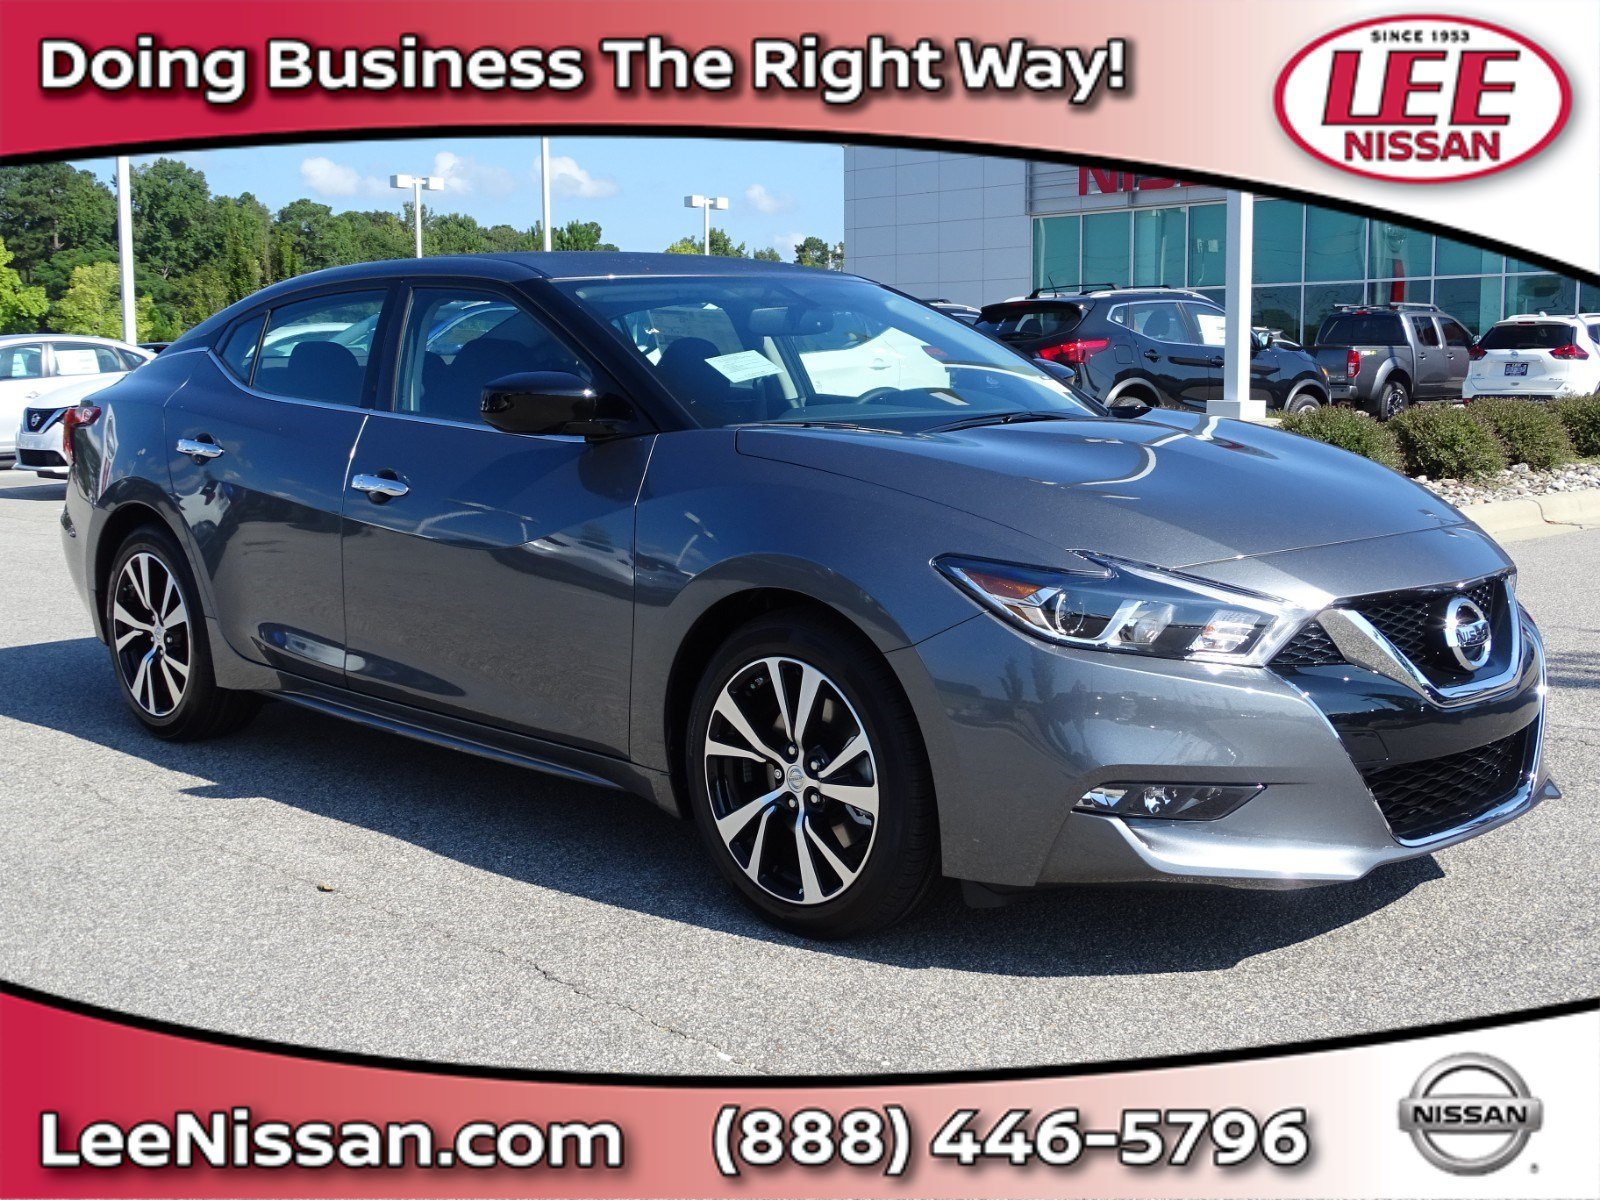 2018 Nissan Maxima S S 3.5L for sale in Wilson, NC.